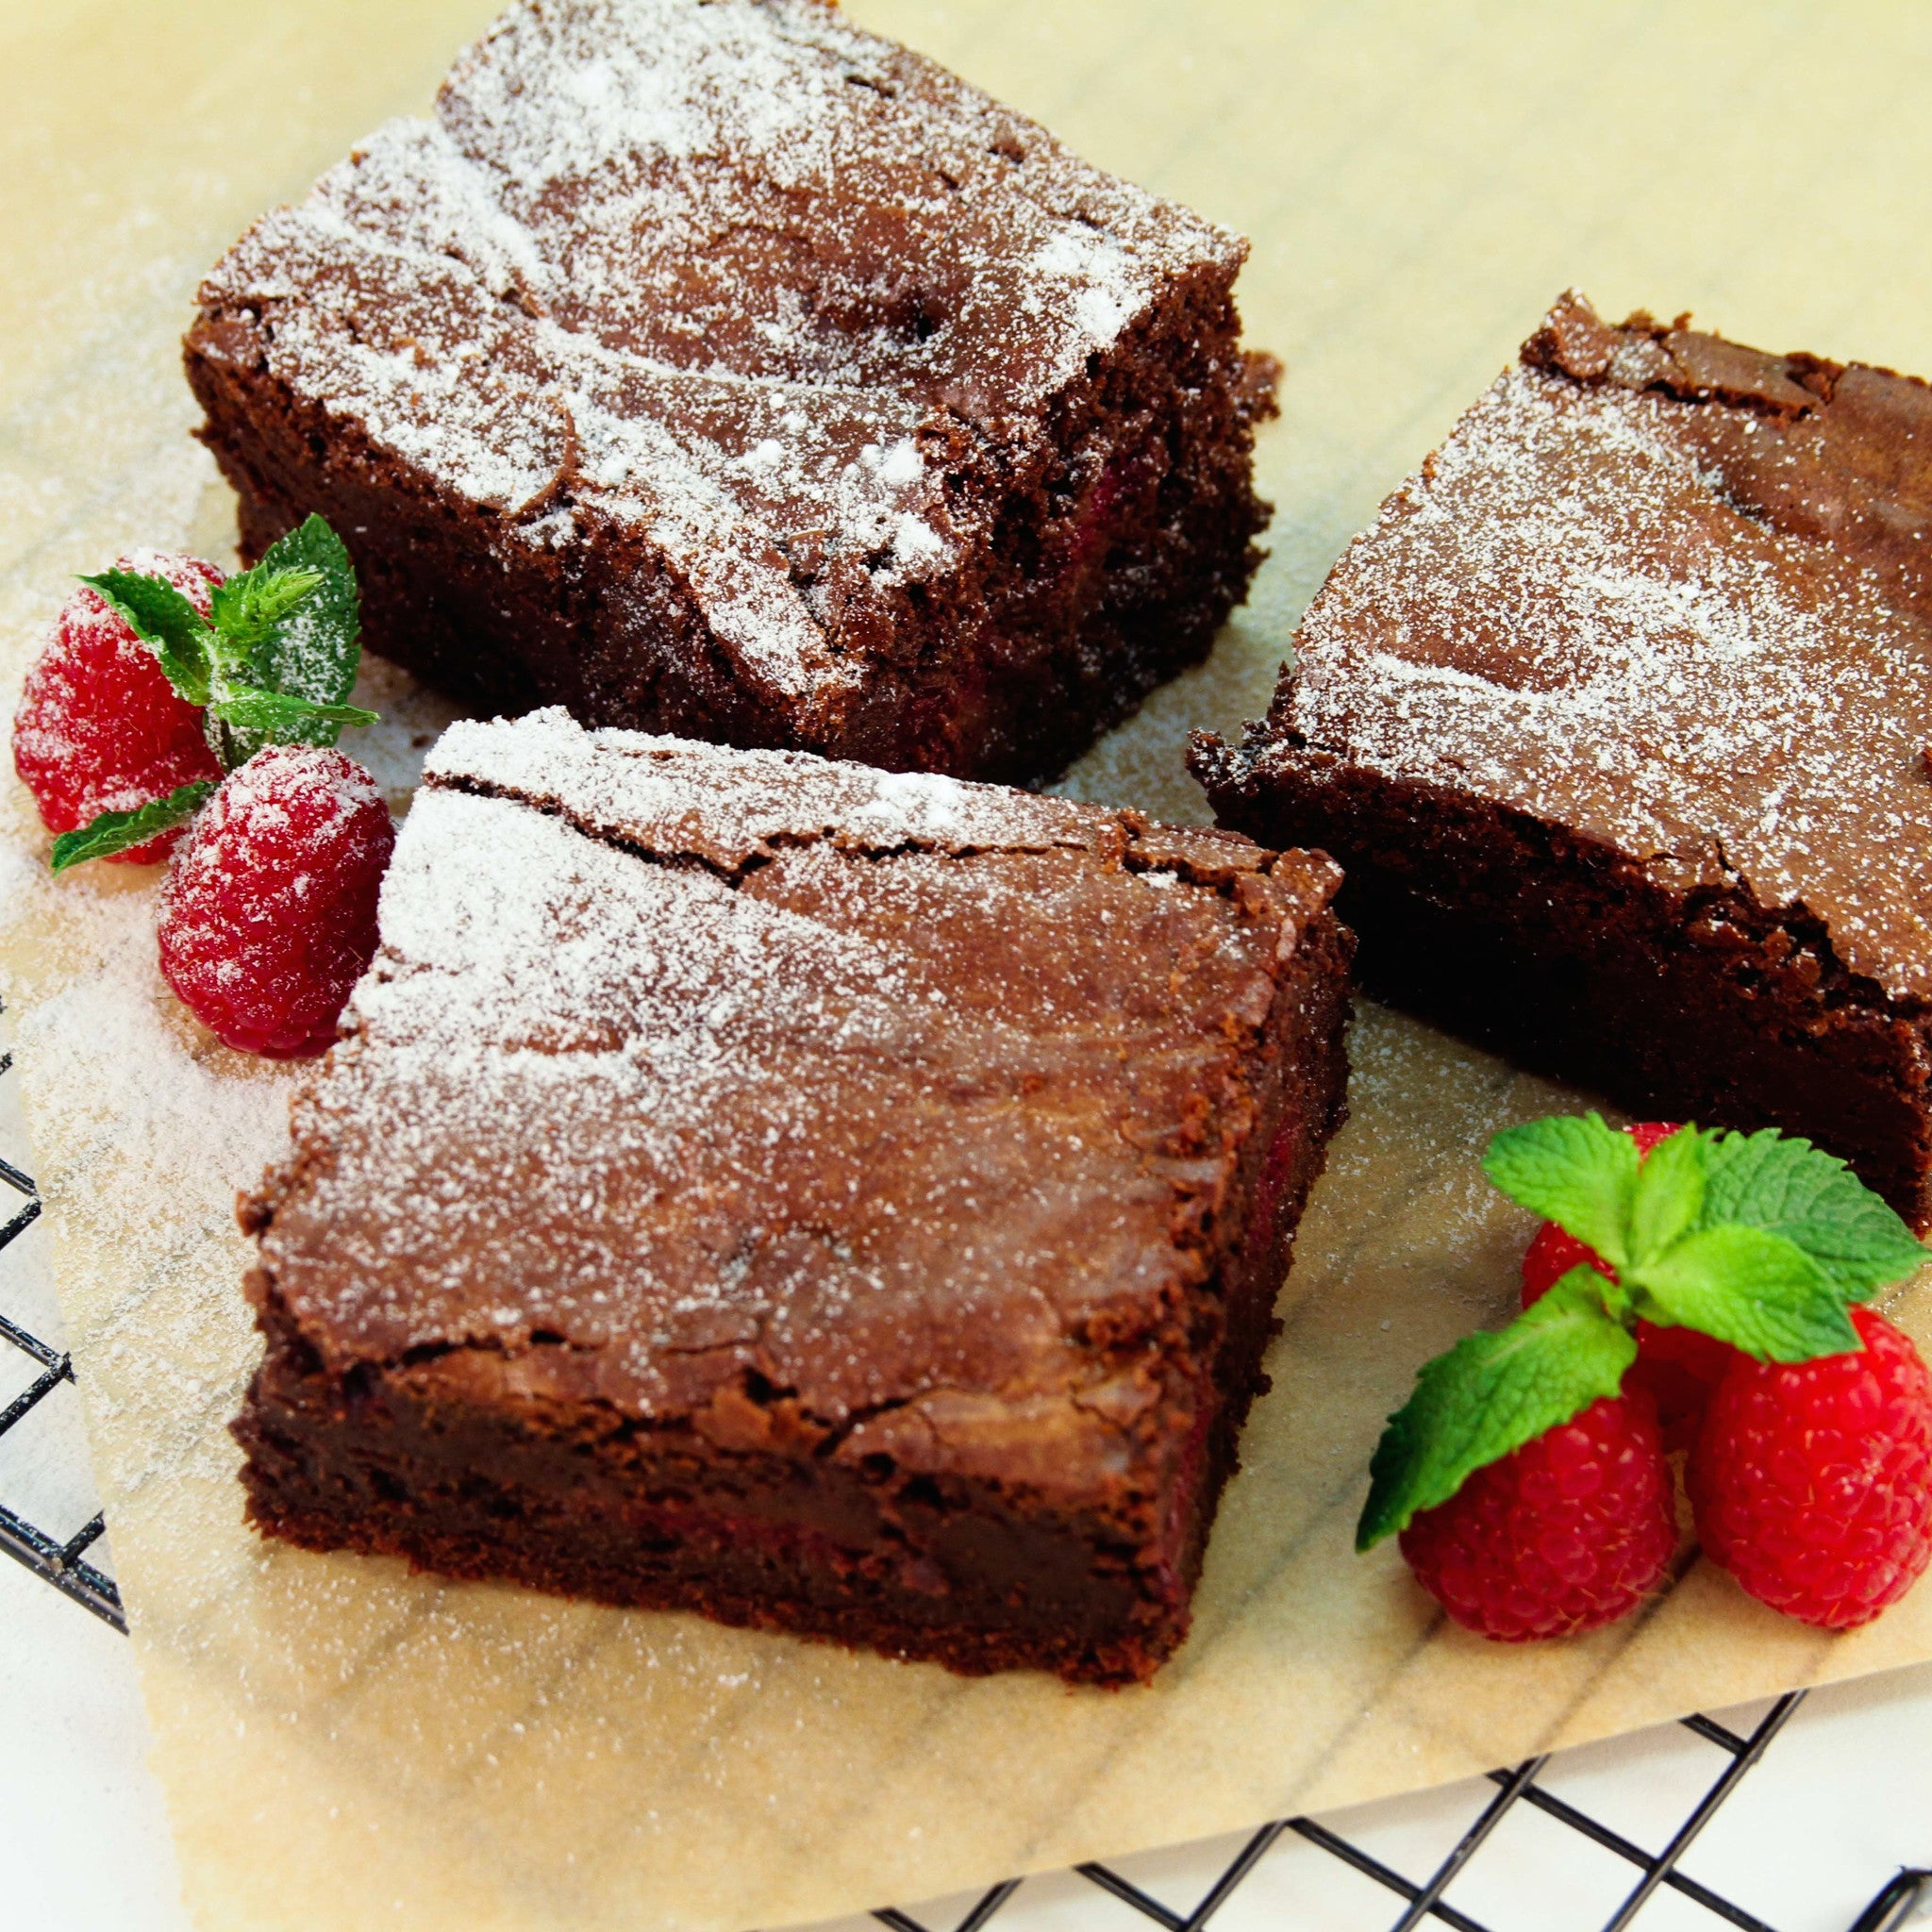 Made Without Gluten - Chocolate Raspberry Brownie